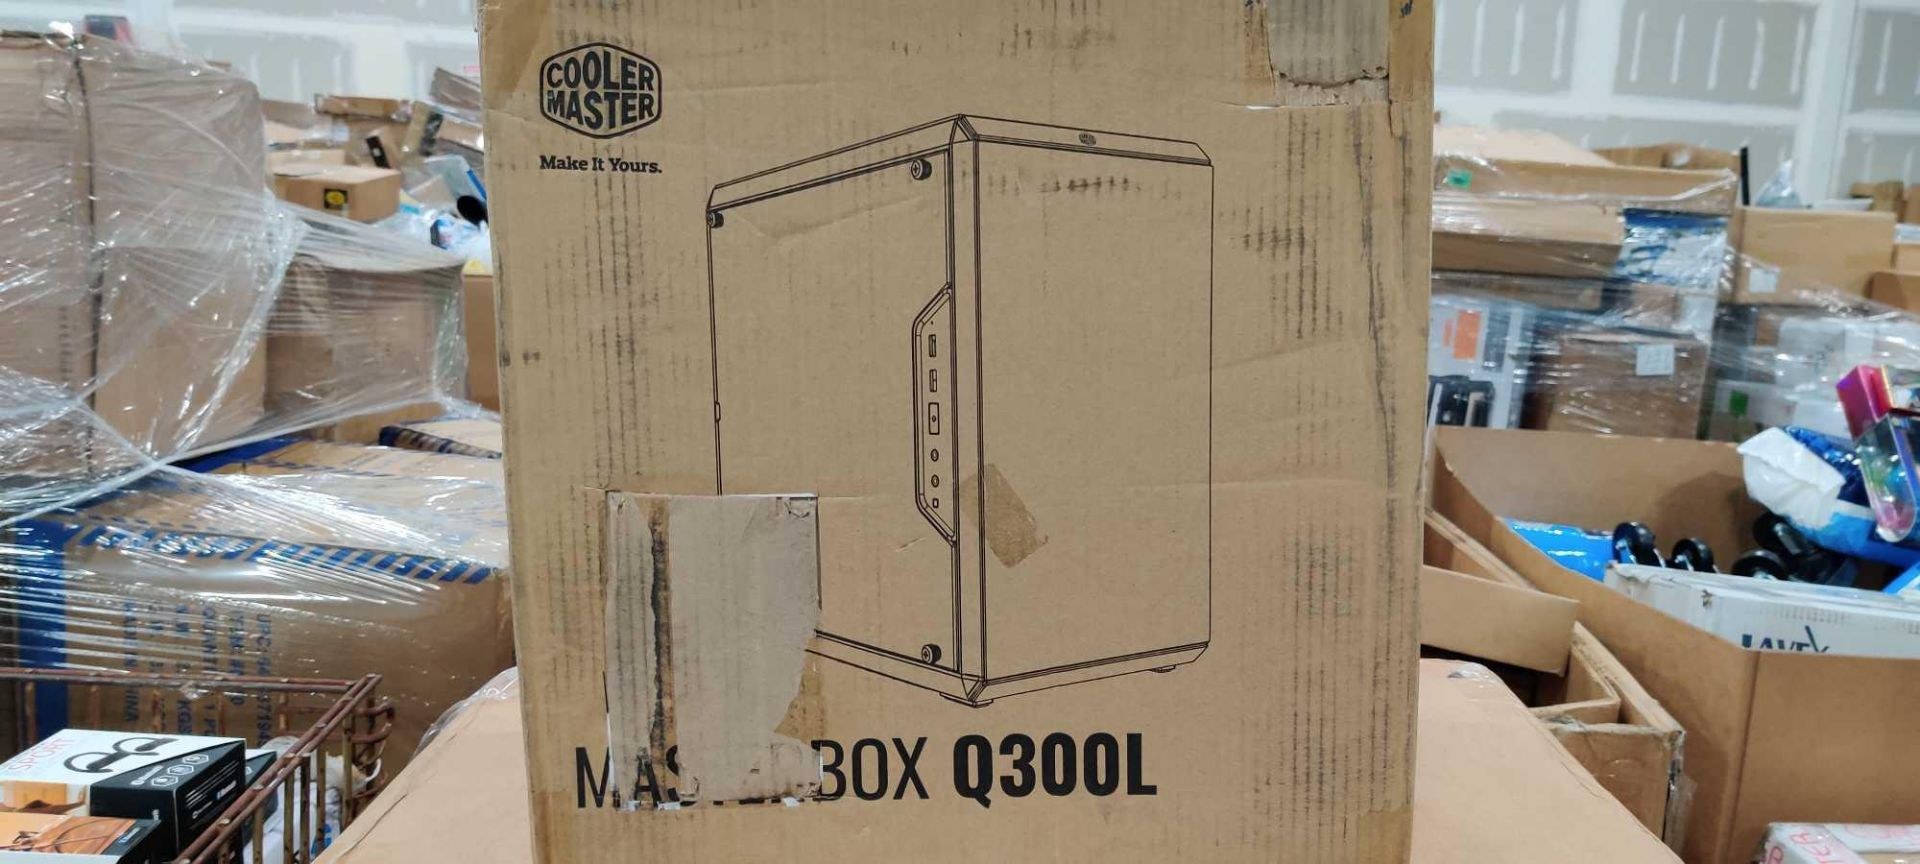 Single Pallet - Image 9 of 18